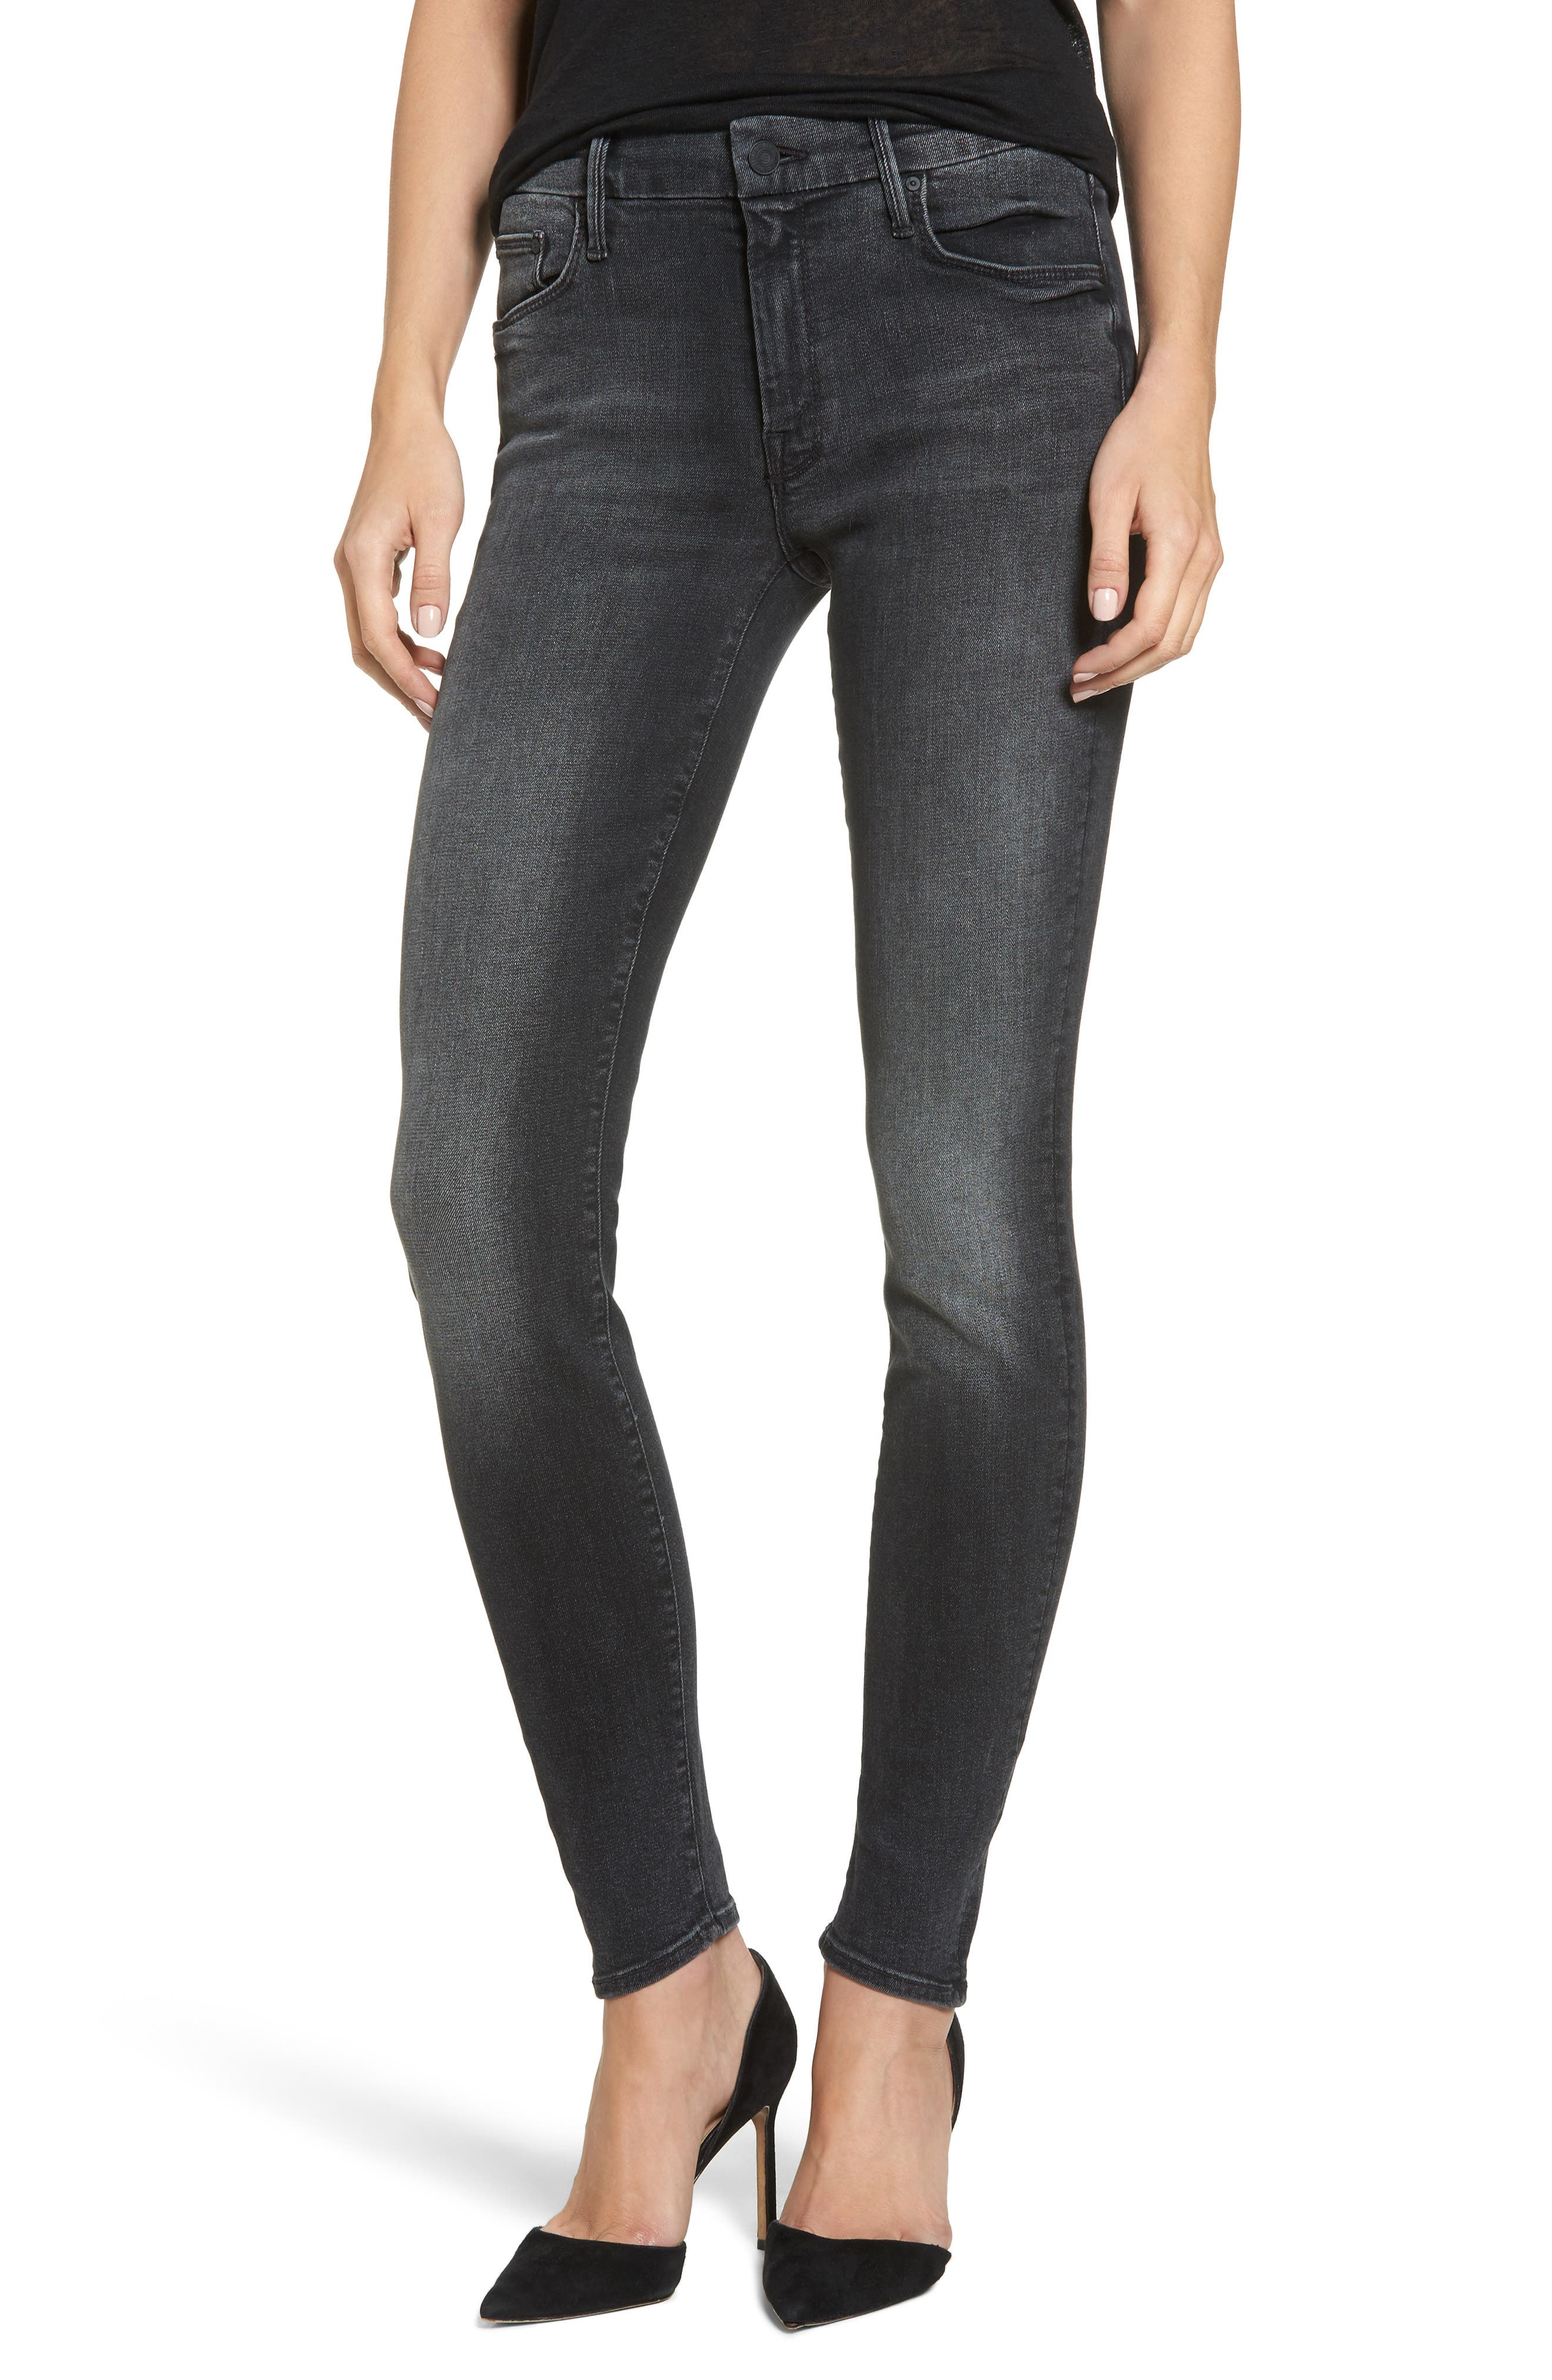 Alternate Image 1 Selected - MOTHER The Looker Mid Rise Skinny Jeans (Cat Got Your Tongue)